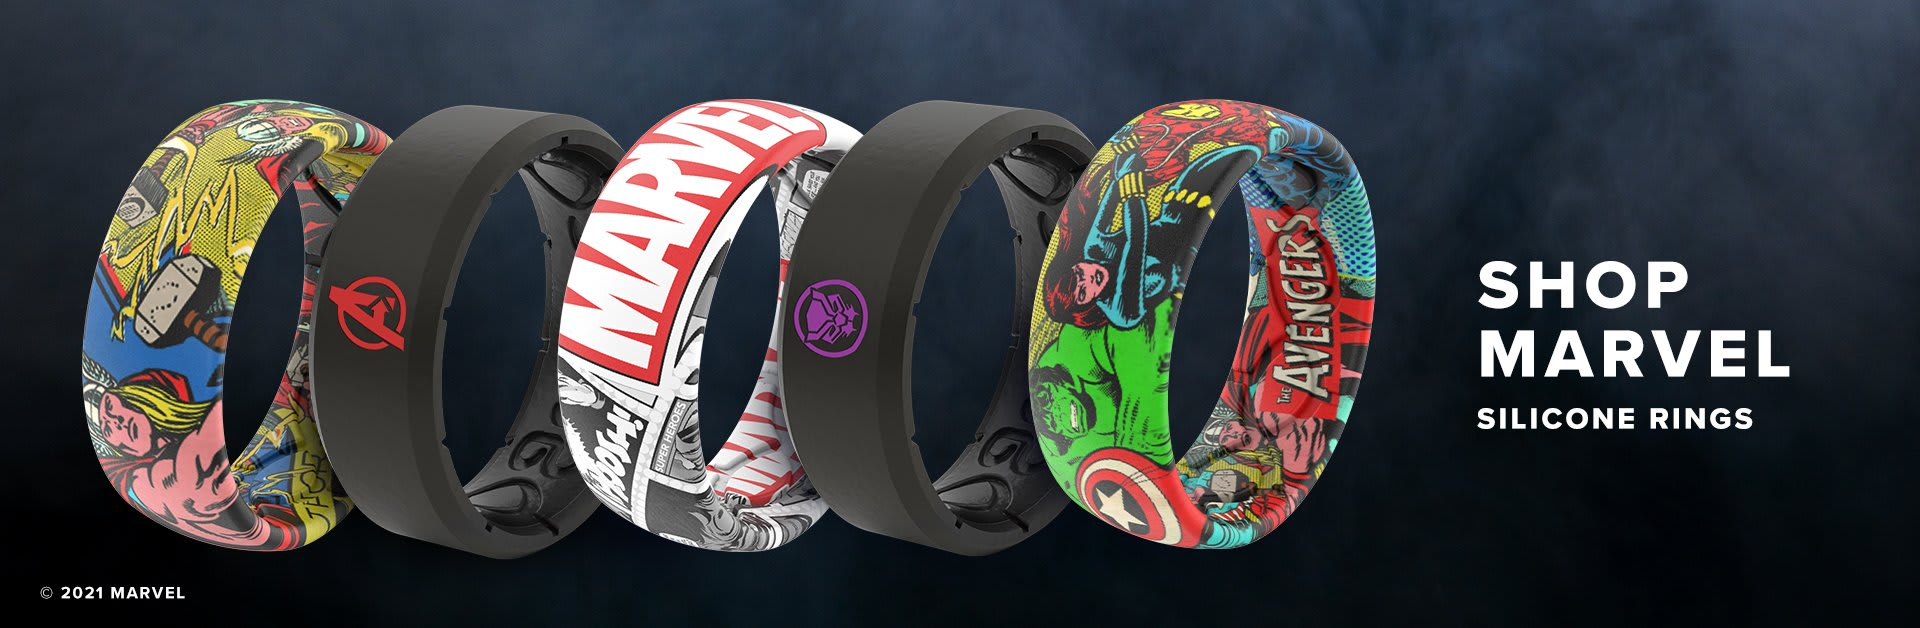 Shop Marvel Silicone Rings